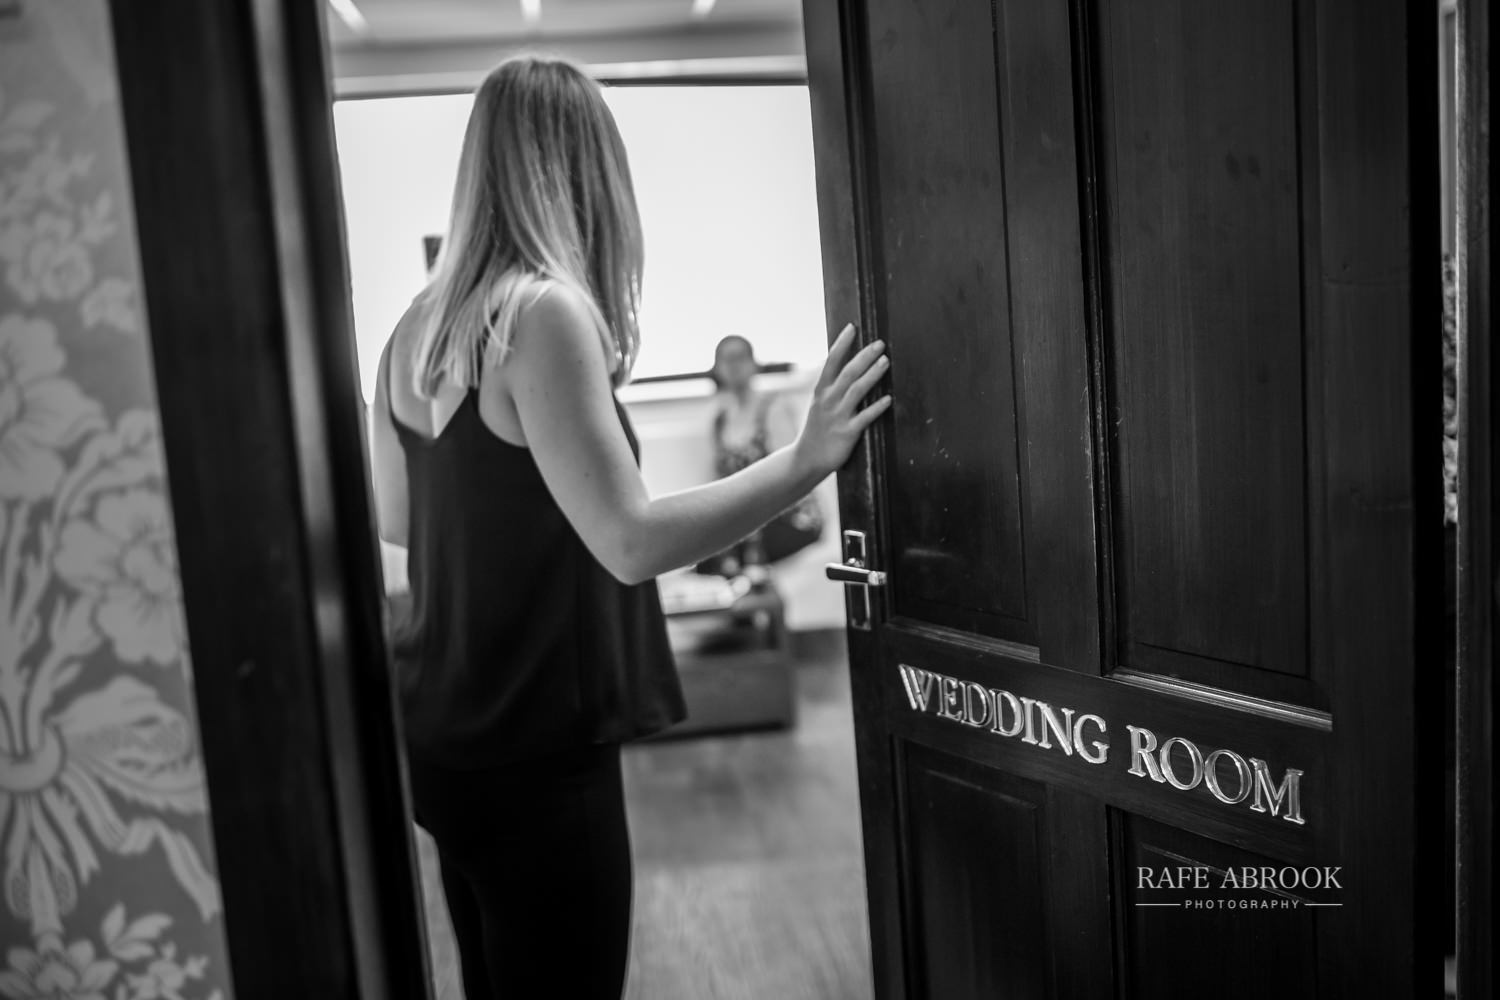 minstrel court wedding royston cambridge hertfordshire wedding photographer-1002.jpg